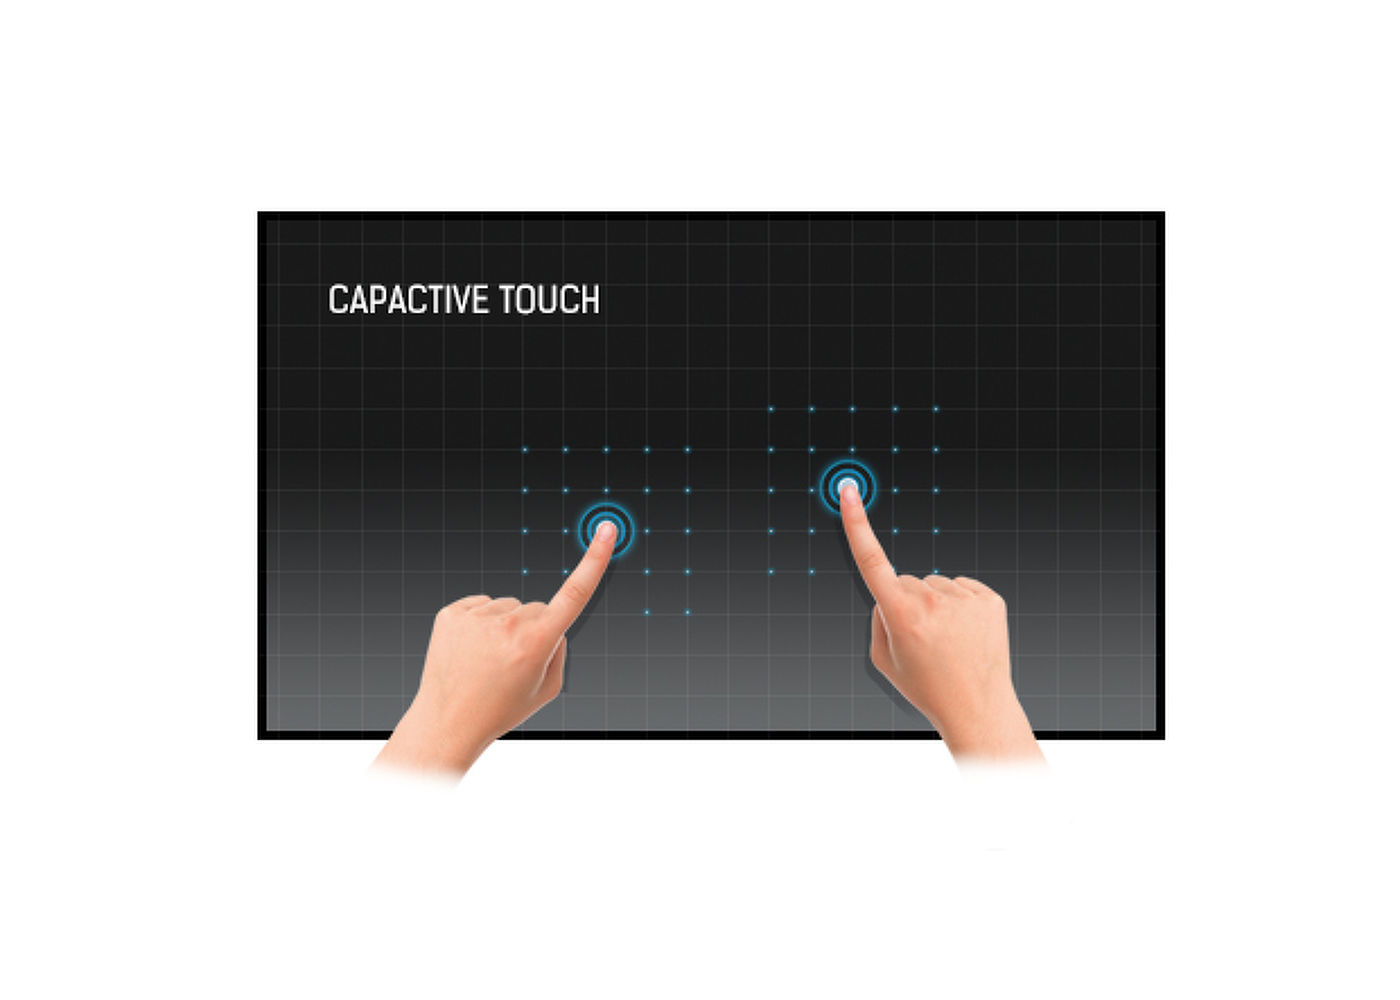 TOUCH TECHNOLOGY - CAPACITIVE